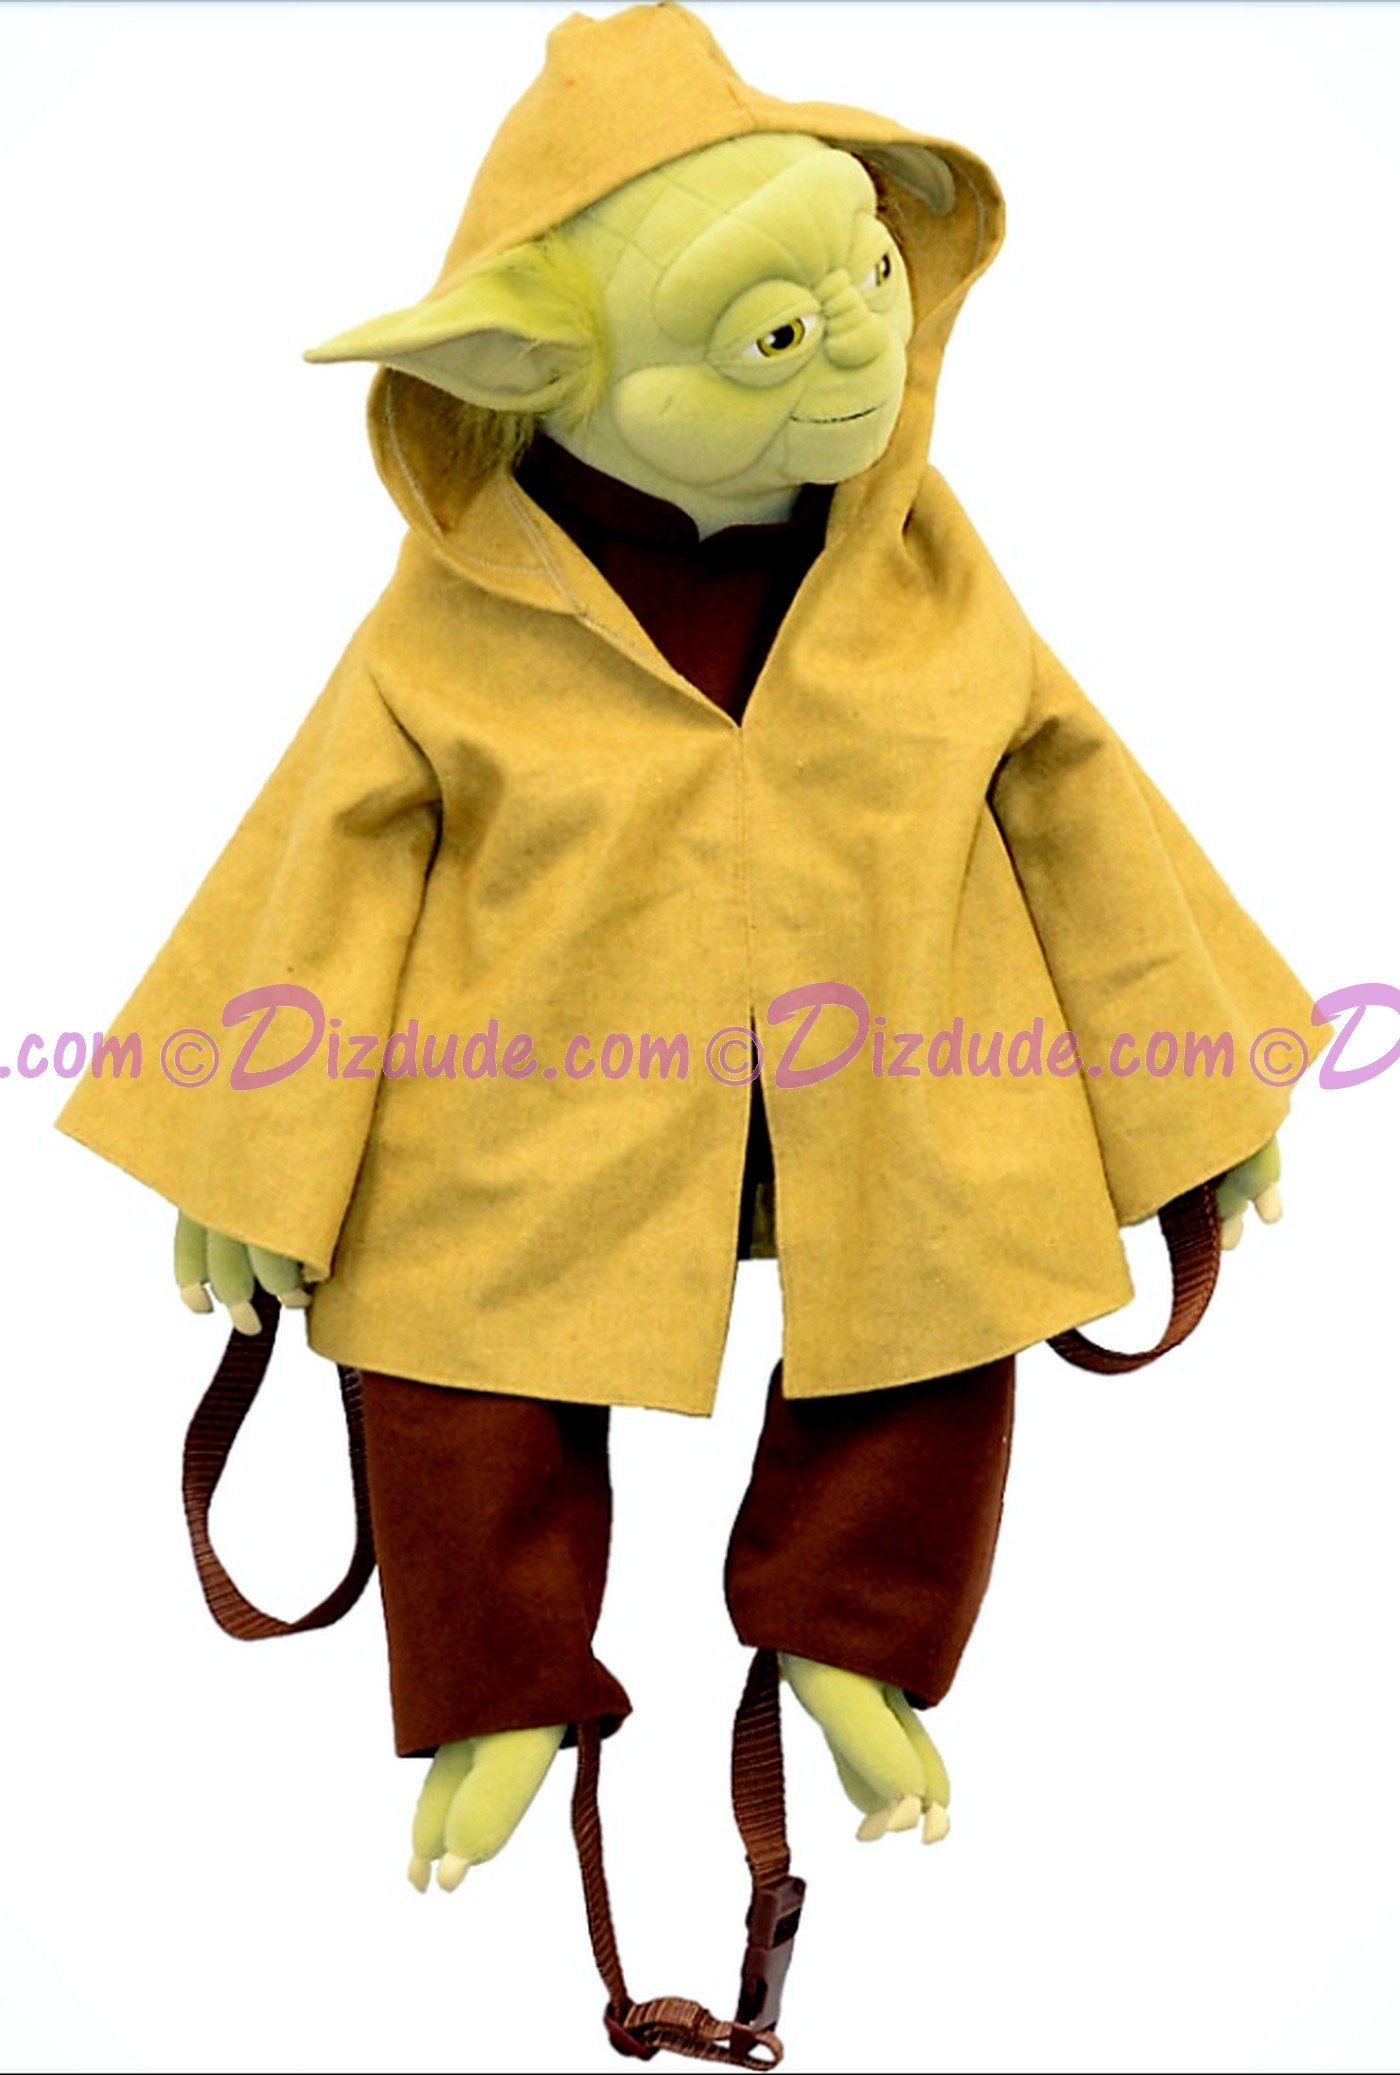 Disney Star Wars Yoda Plush Backpack © Dizdude.com